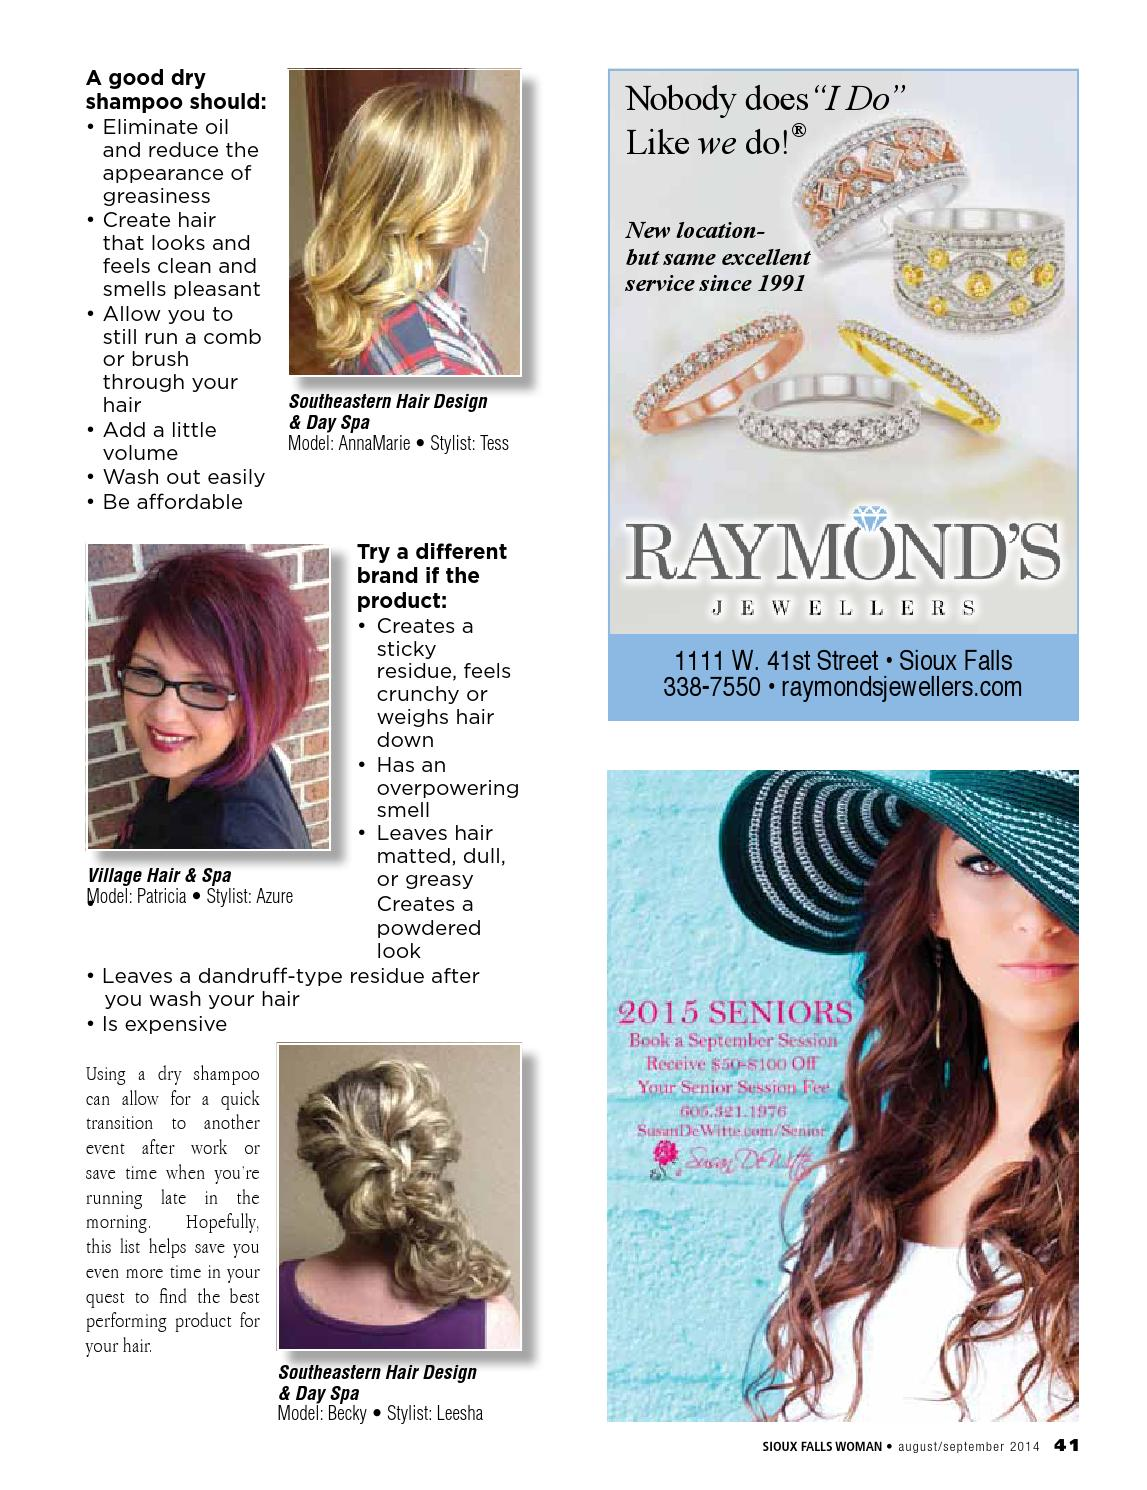 sioux falls woman magazine   august september 2014 by